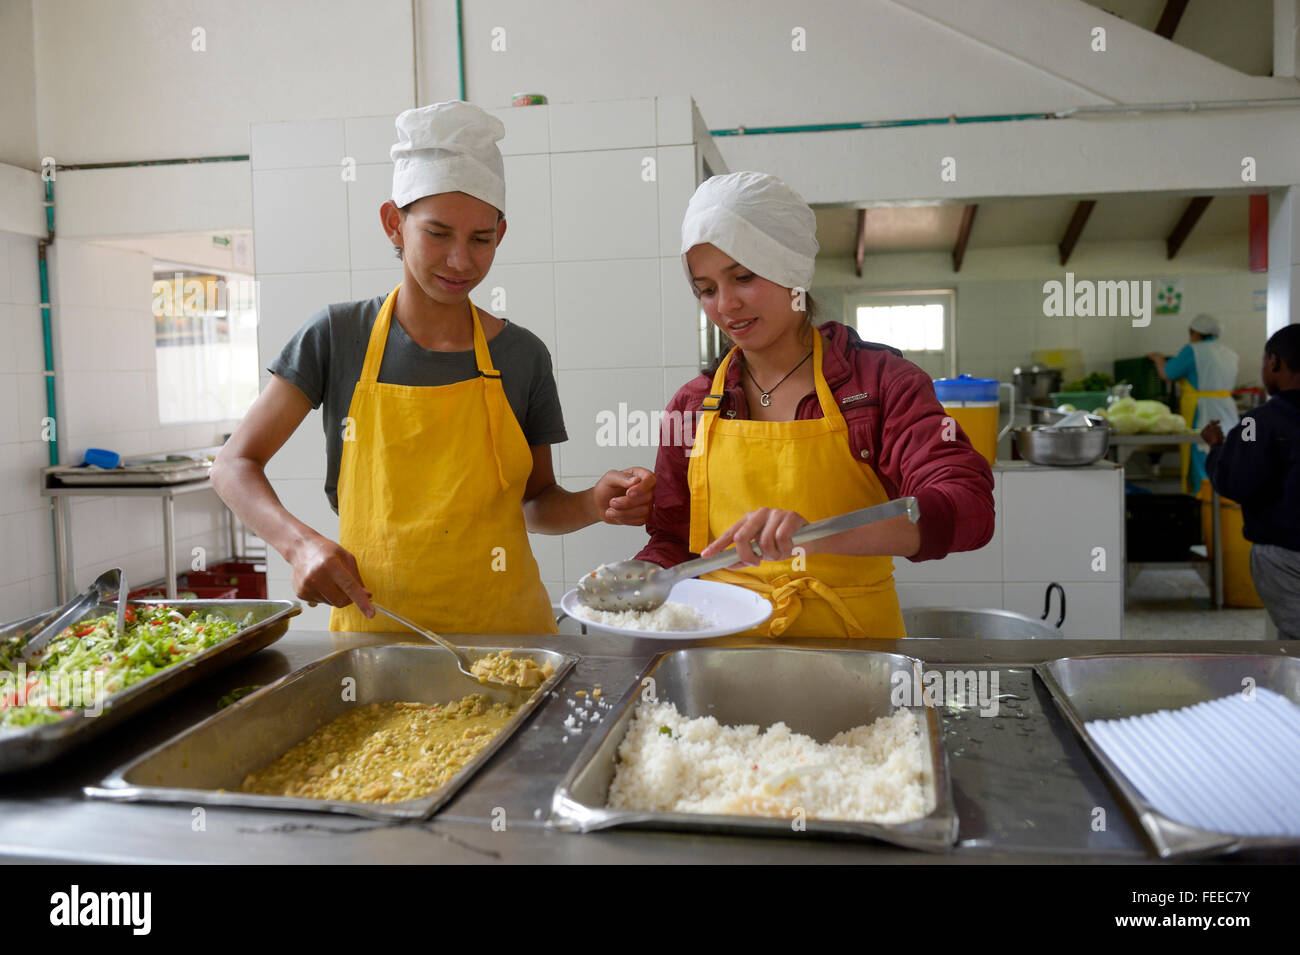 Teens at the food counter in a canteen, social project, Bogota, Colombia - Stock Image